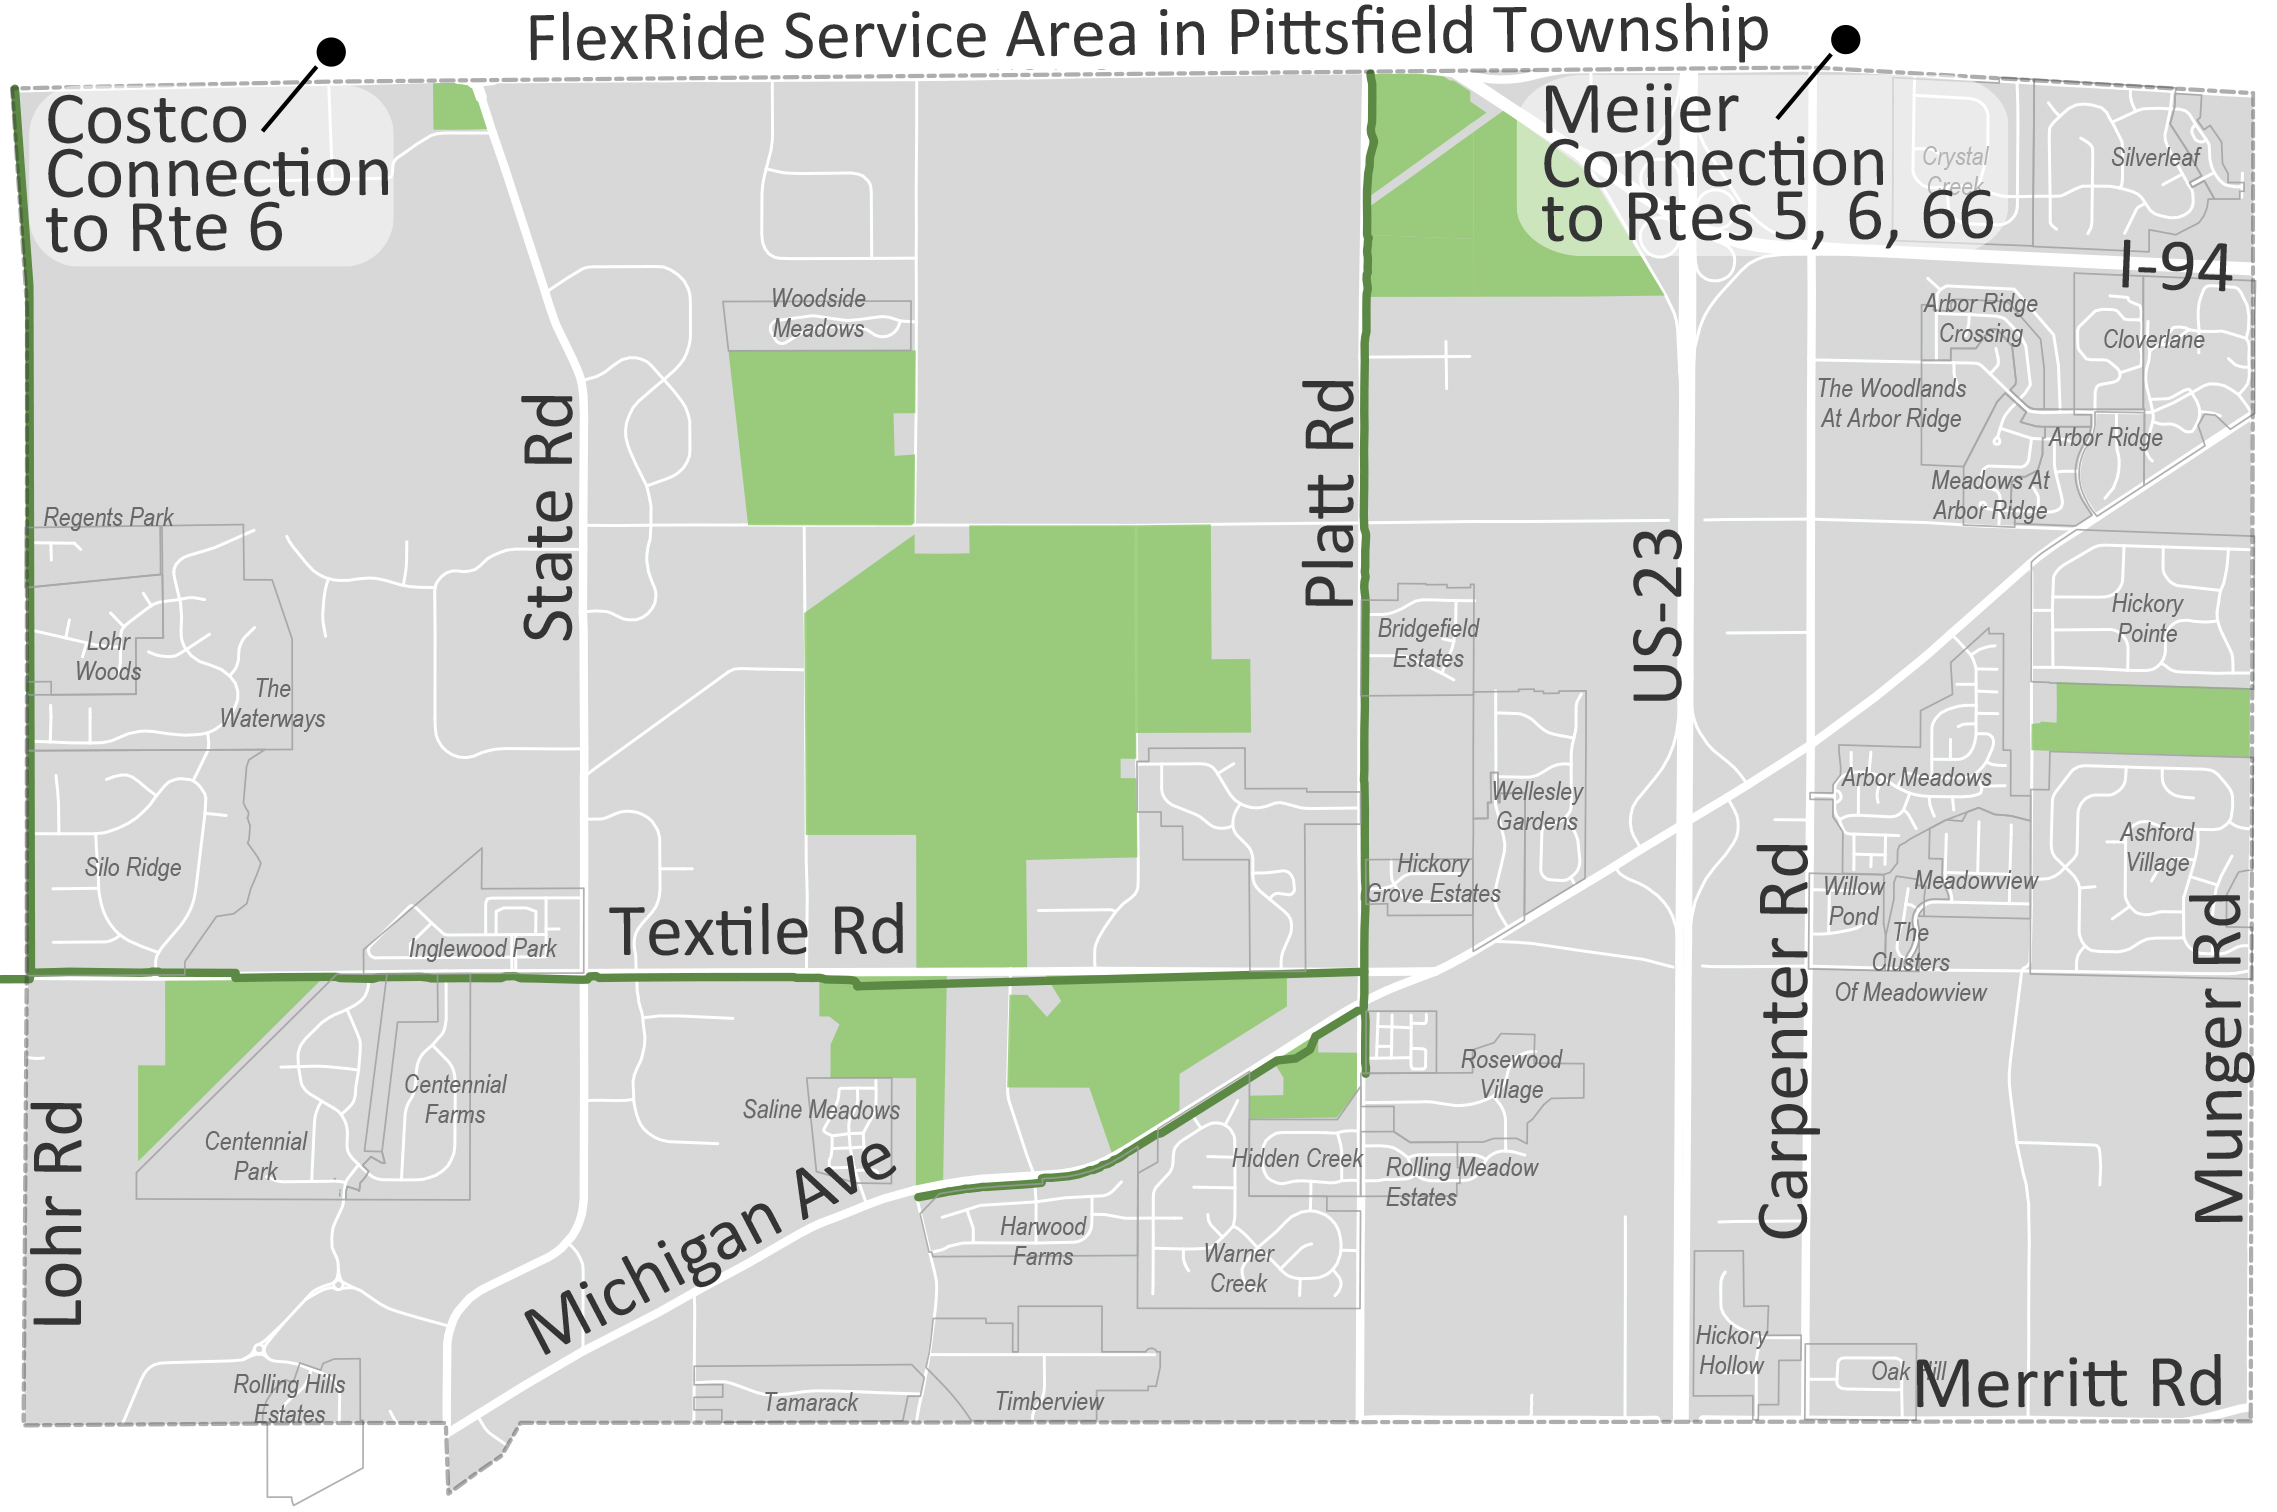 FlexRide Service Area